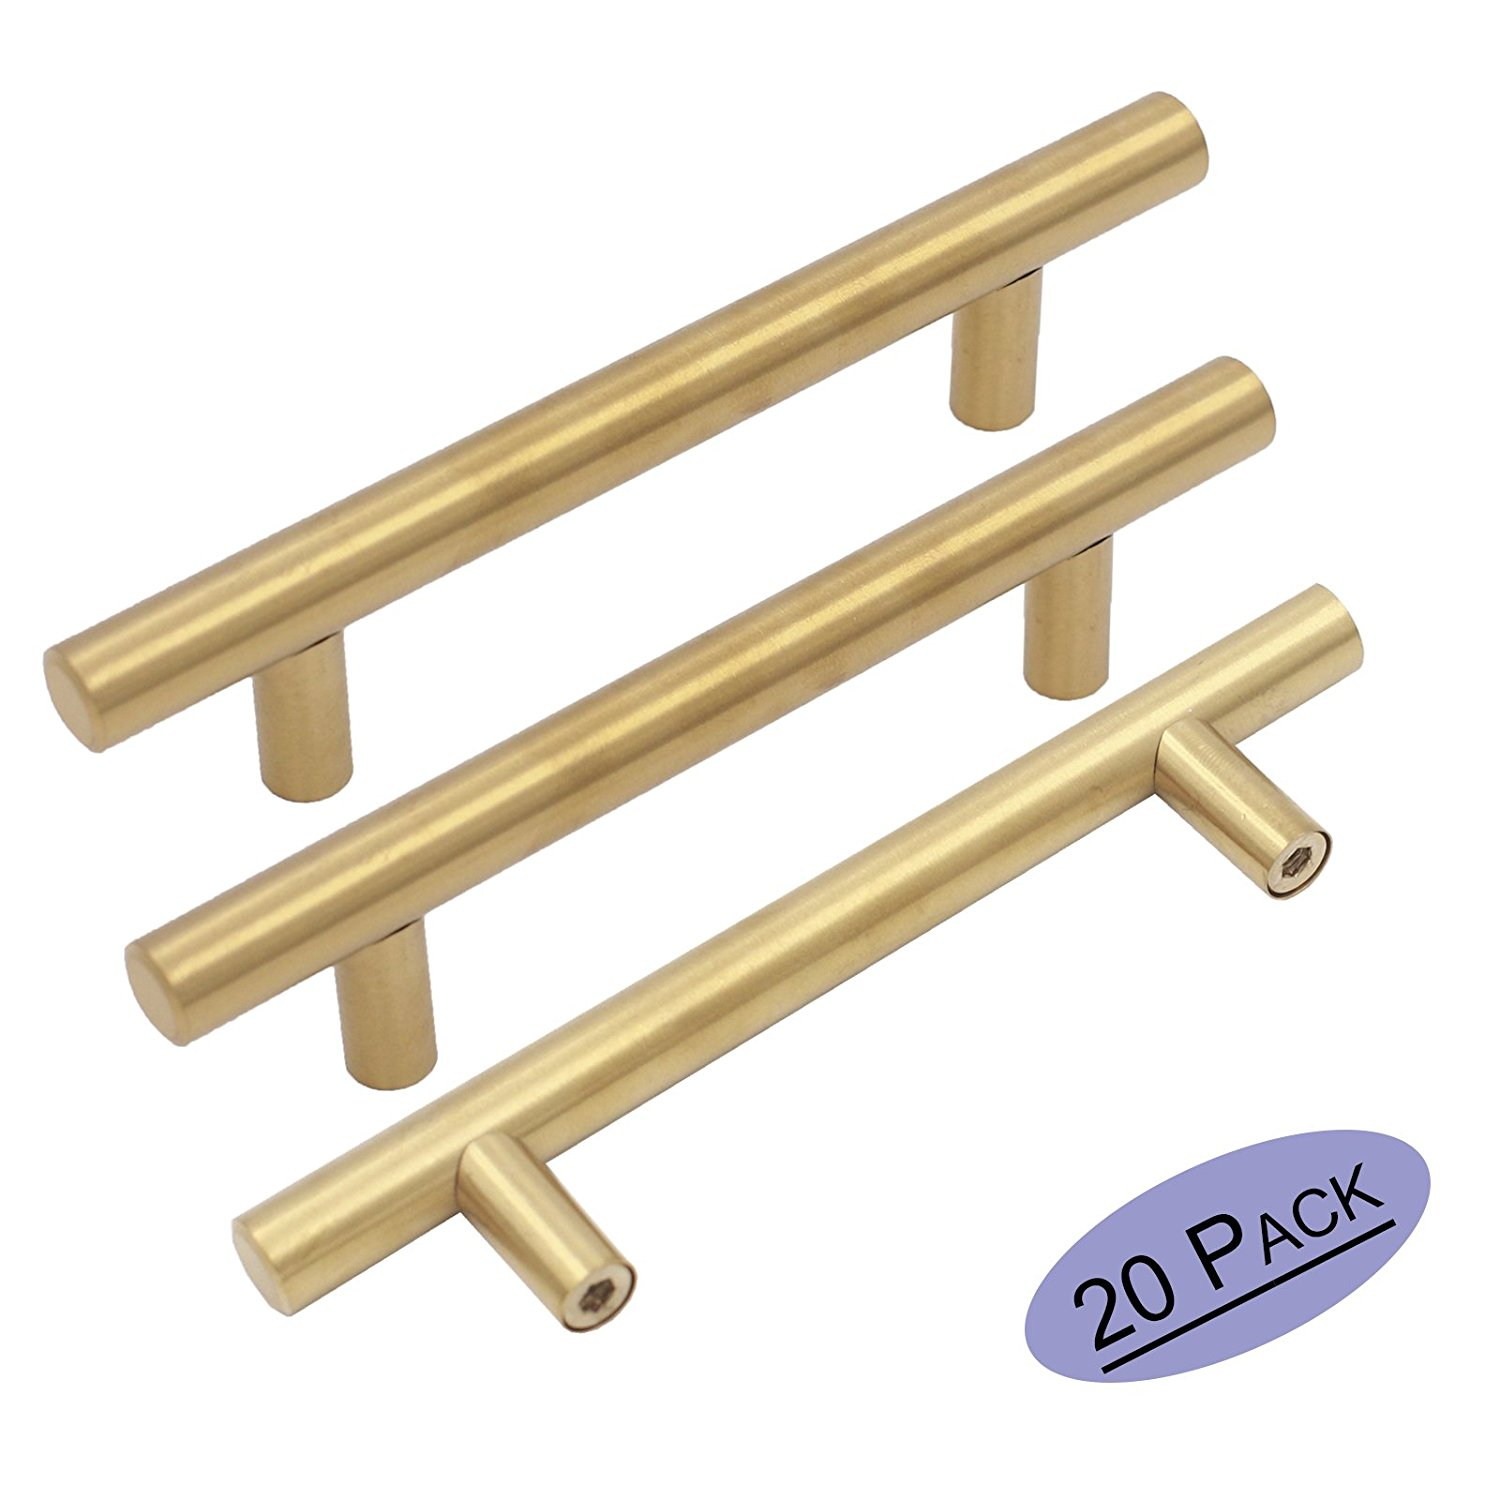 20Pack Gold Cabinet Pulls 3.5 Inch Brass Drawer Pulls- Goldenwarm LS201GD90 Brushed Brass Dresser Bathroom Cabinet Handles Kitchen Hardware Stainless Steel